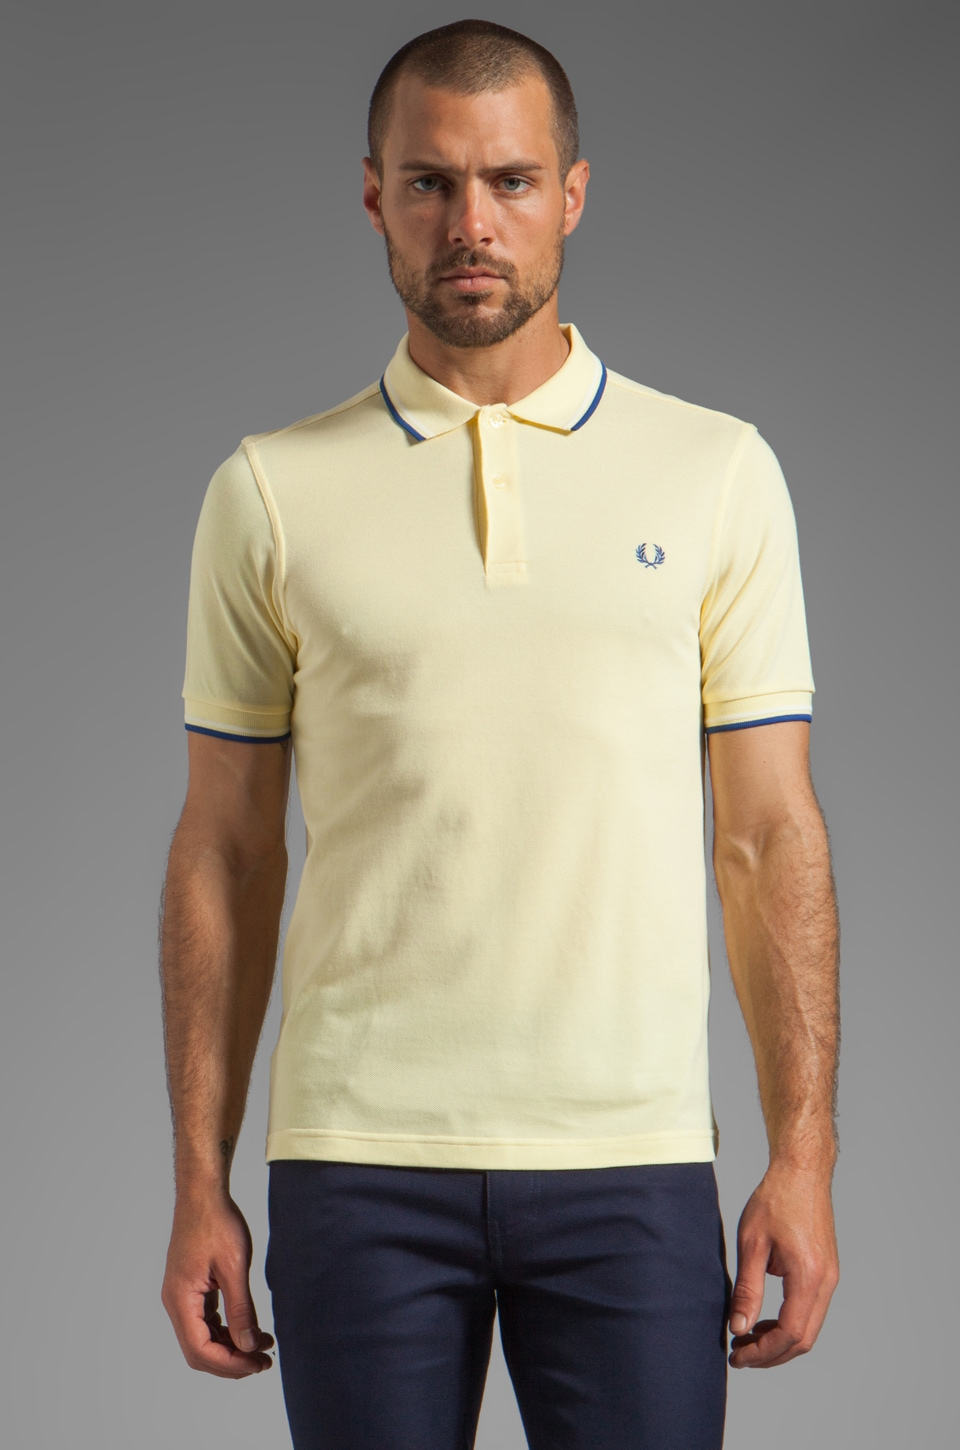 Fred Perry Twin Tipped Fred Perry Shirt in Ice Lemon/Ecru/Midblue